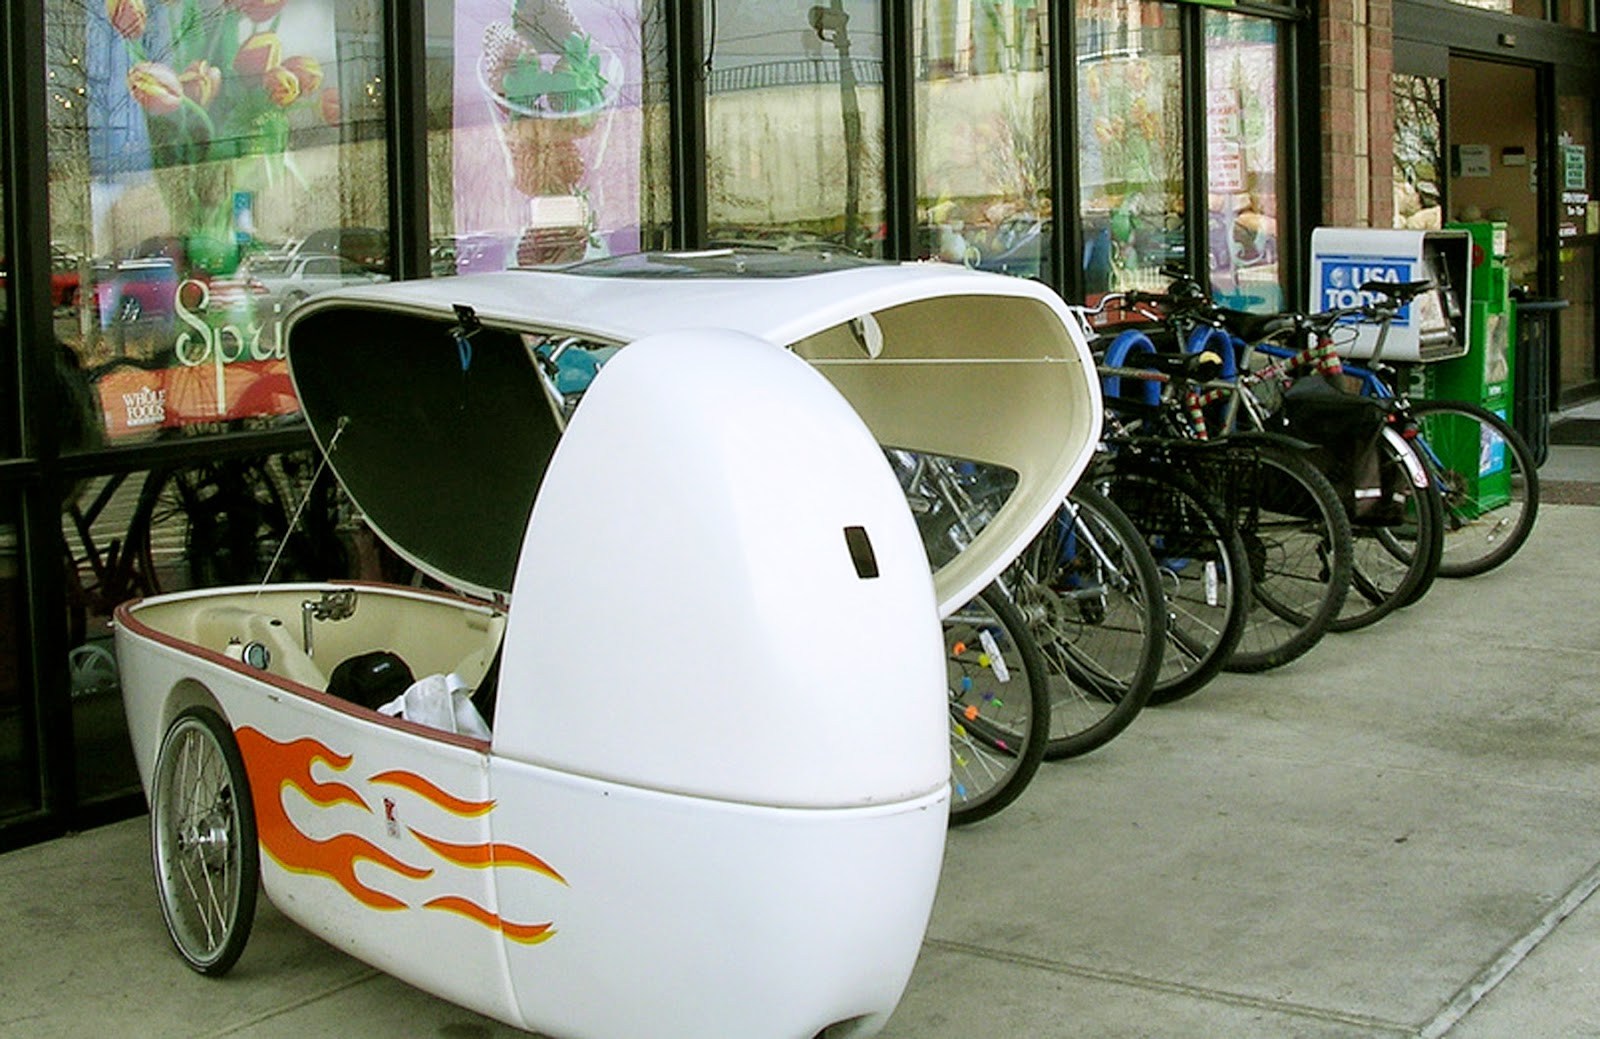 a velomobile in the city